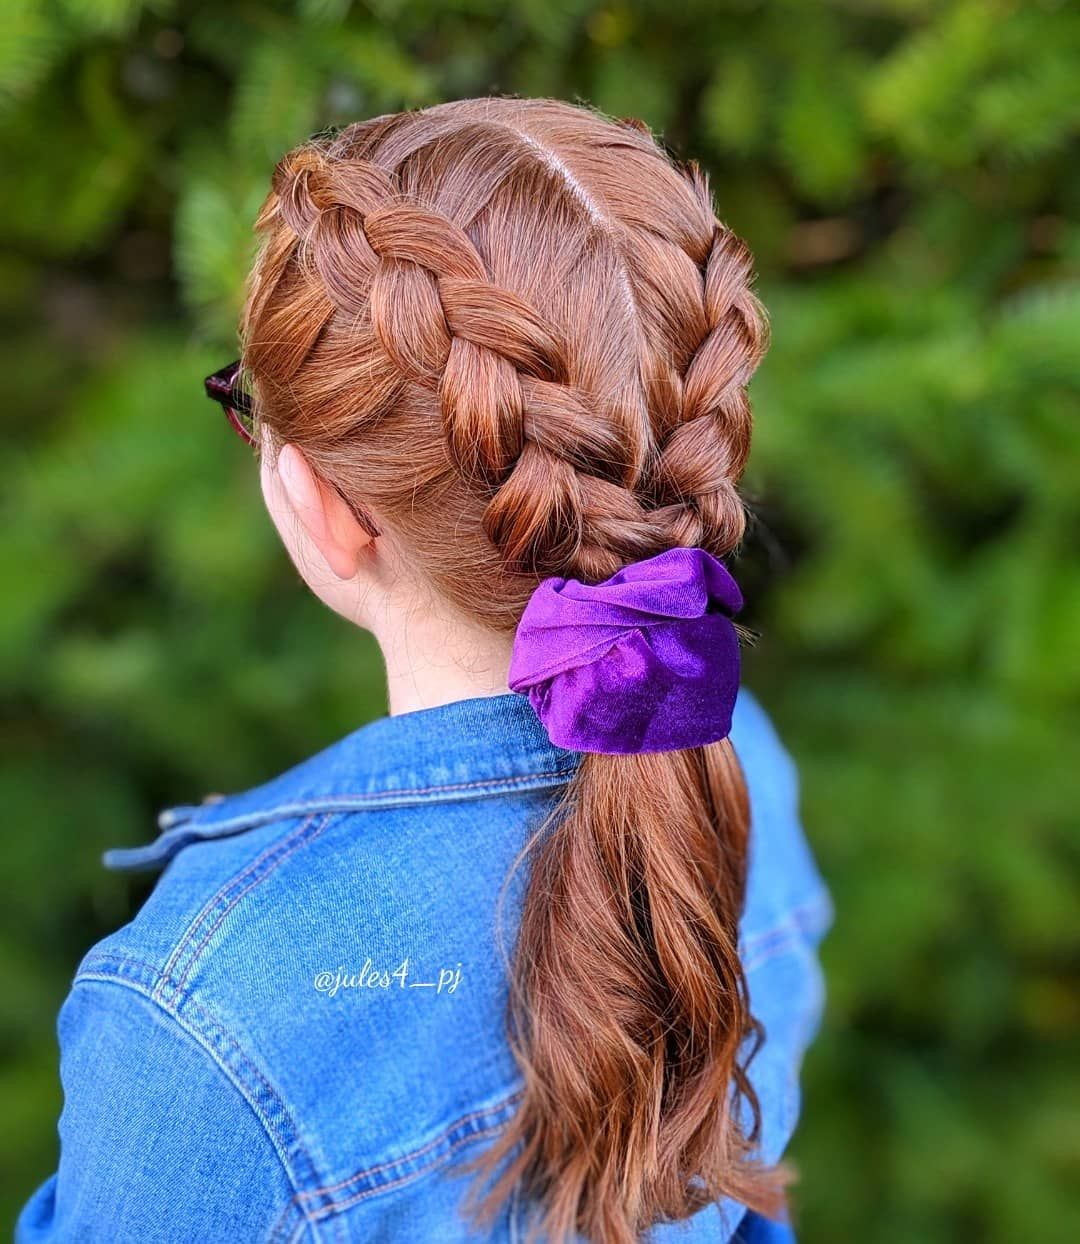 Two Dutch Braids Into A Low Ponytail Easy Braids Simple Braids Quick Braids Two Dutch Braids Low Ponytail Quick Braids